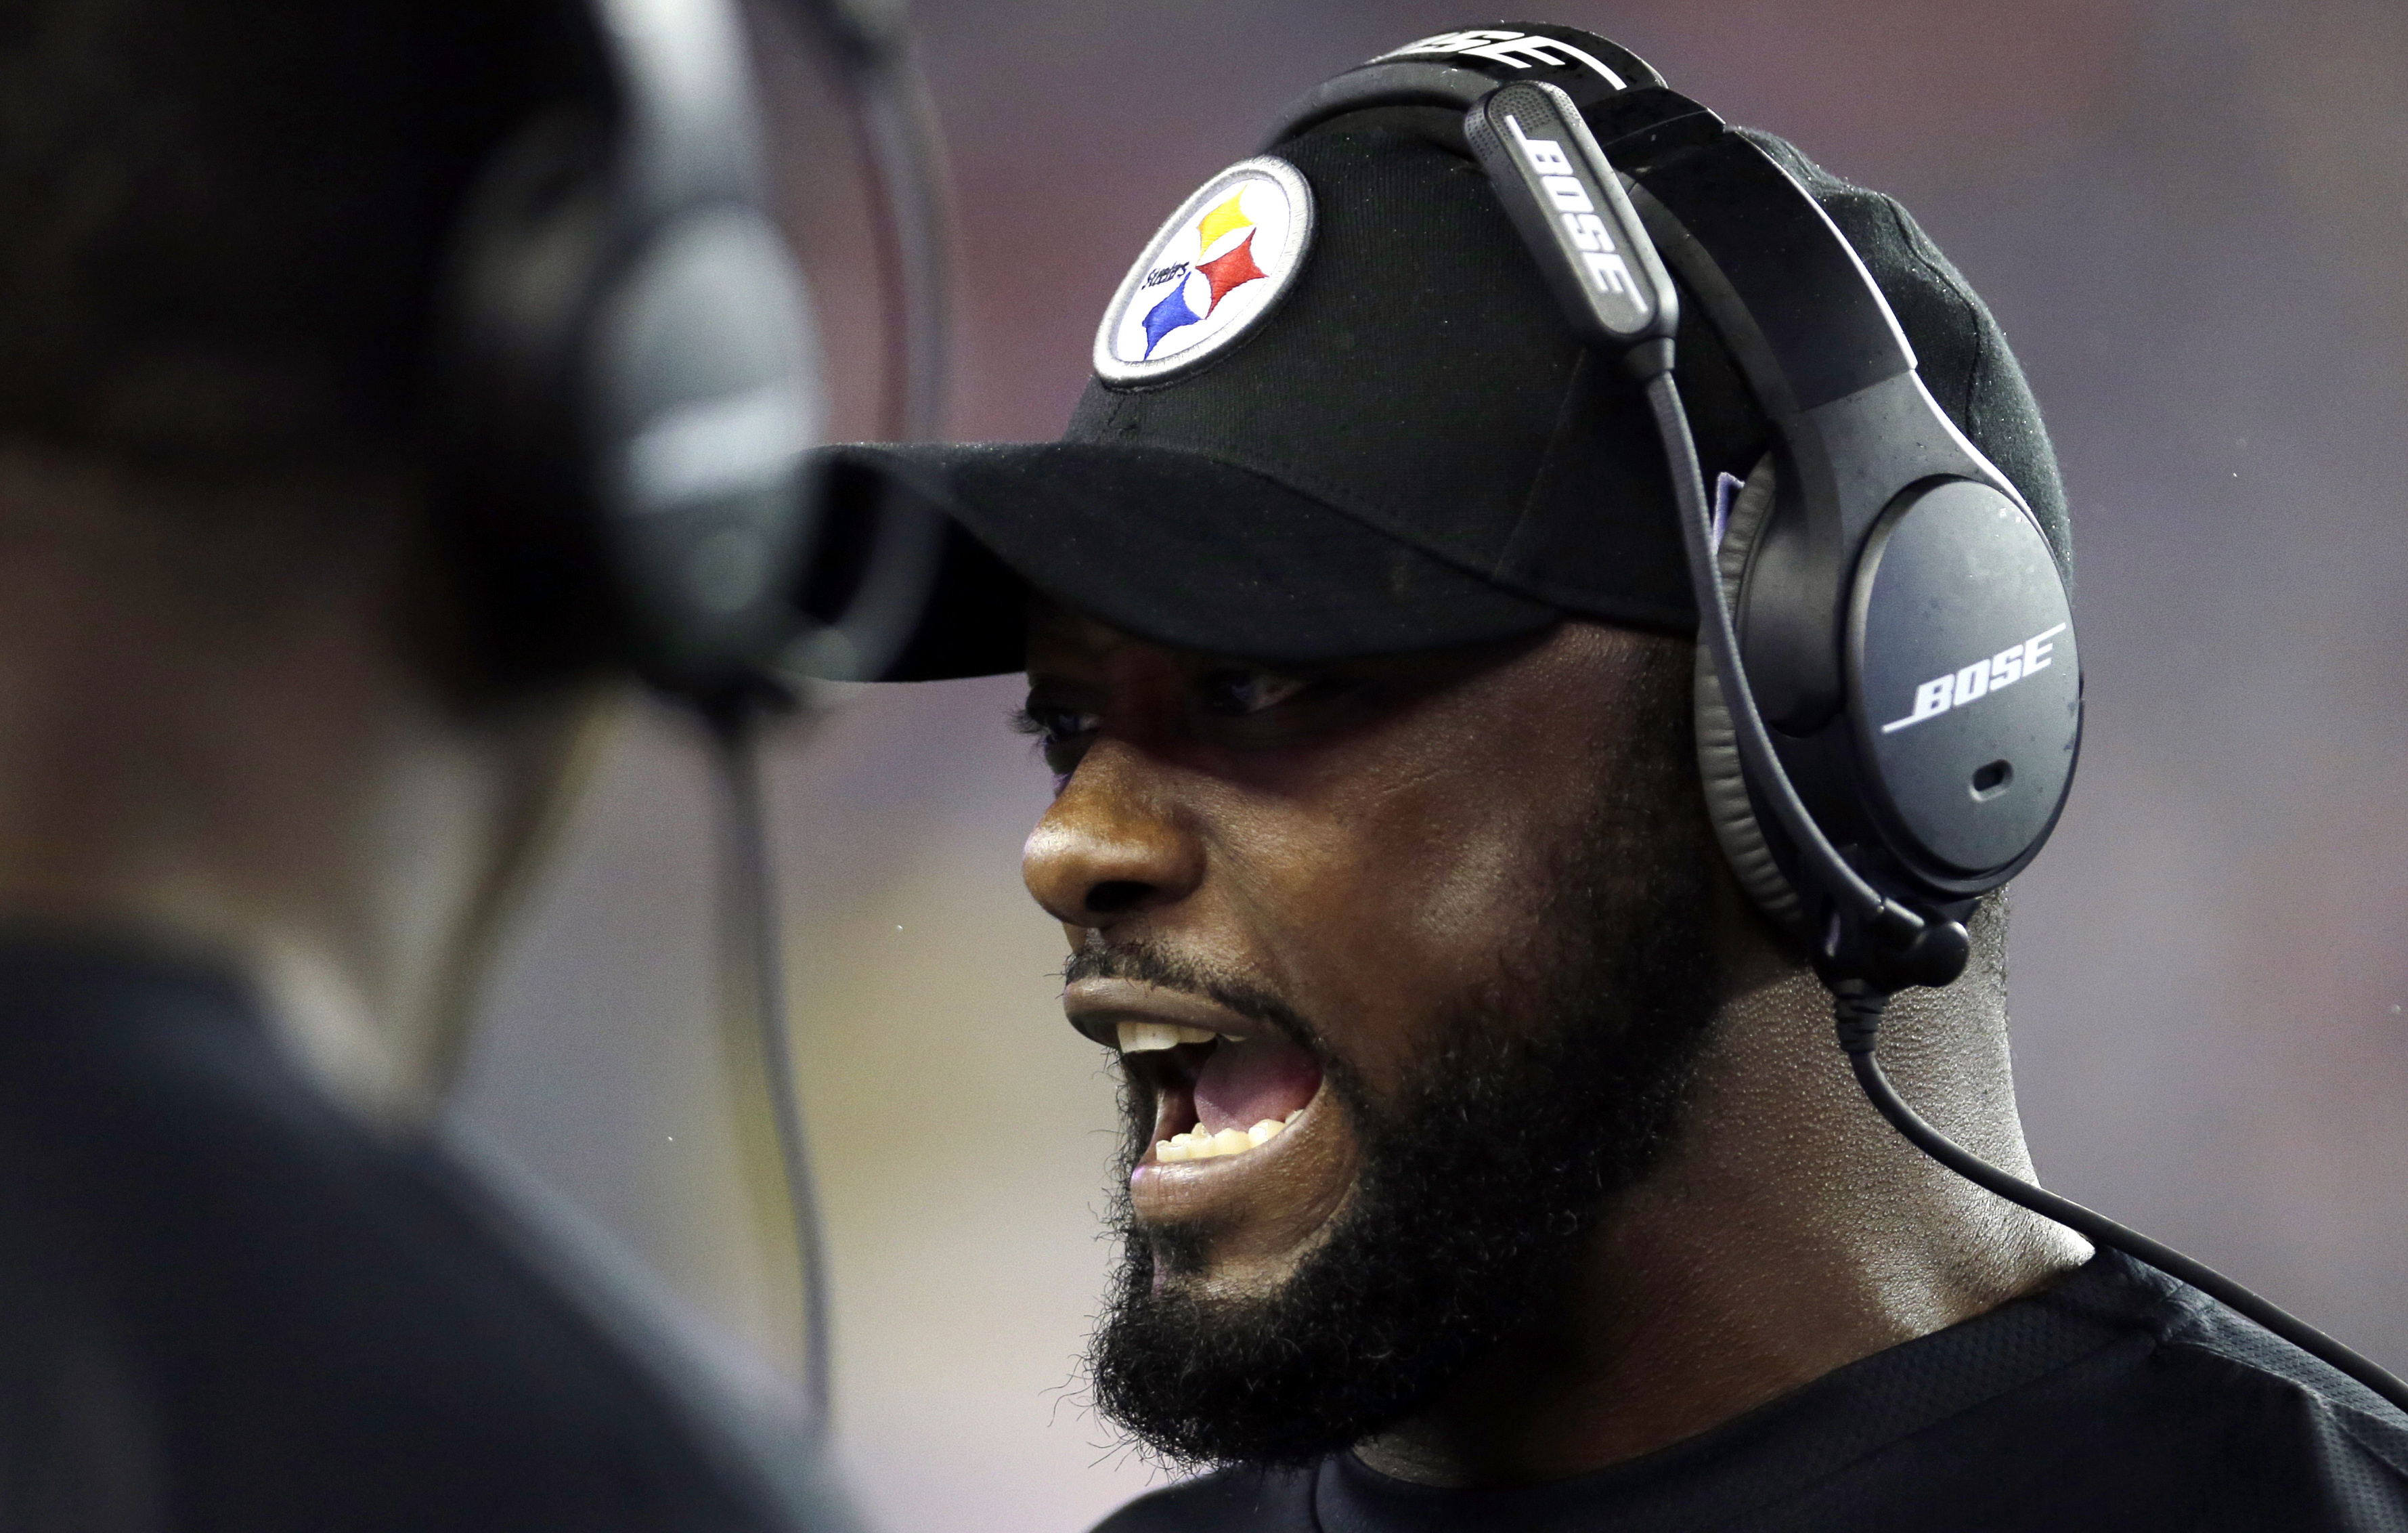 In this photo taken Thursday, Sept. 10, 2015, Pittsburgh Steelers head coach Mike Tomlin speaks to his team on the sideline in the second half of an NFL football game against the New England Patriots in Foxborough, Mass. New England Patriots coach Bill Be